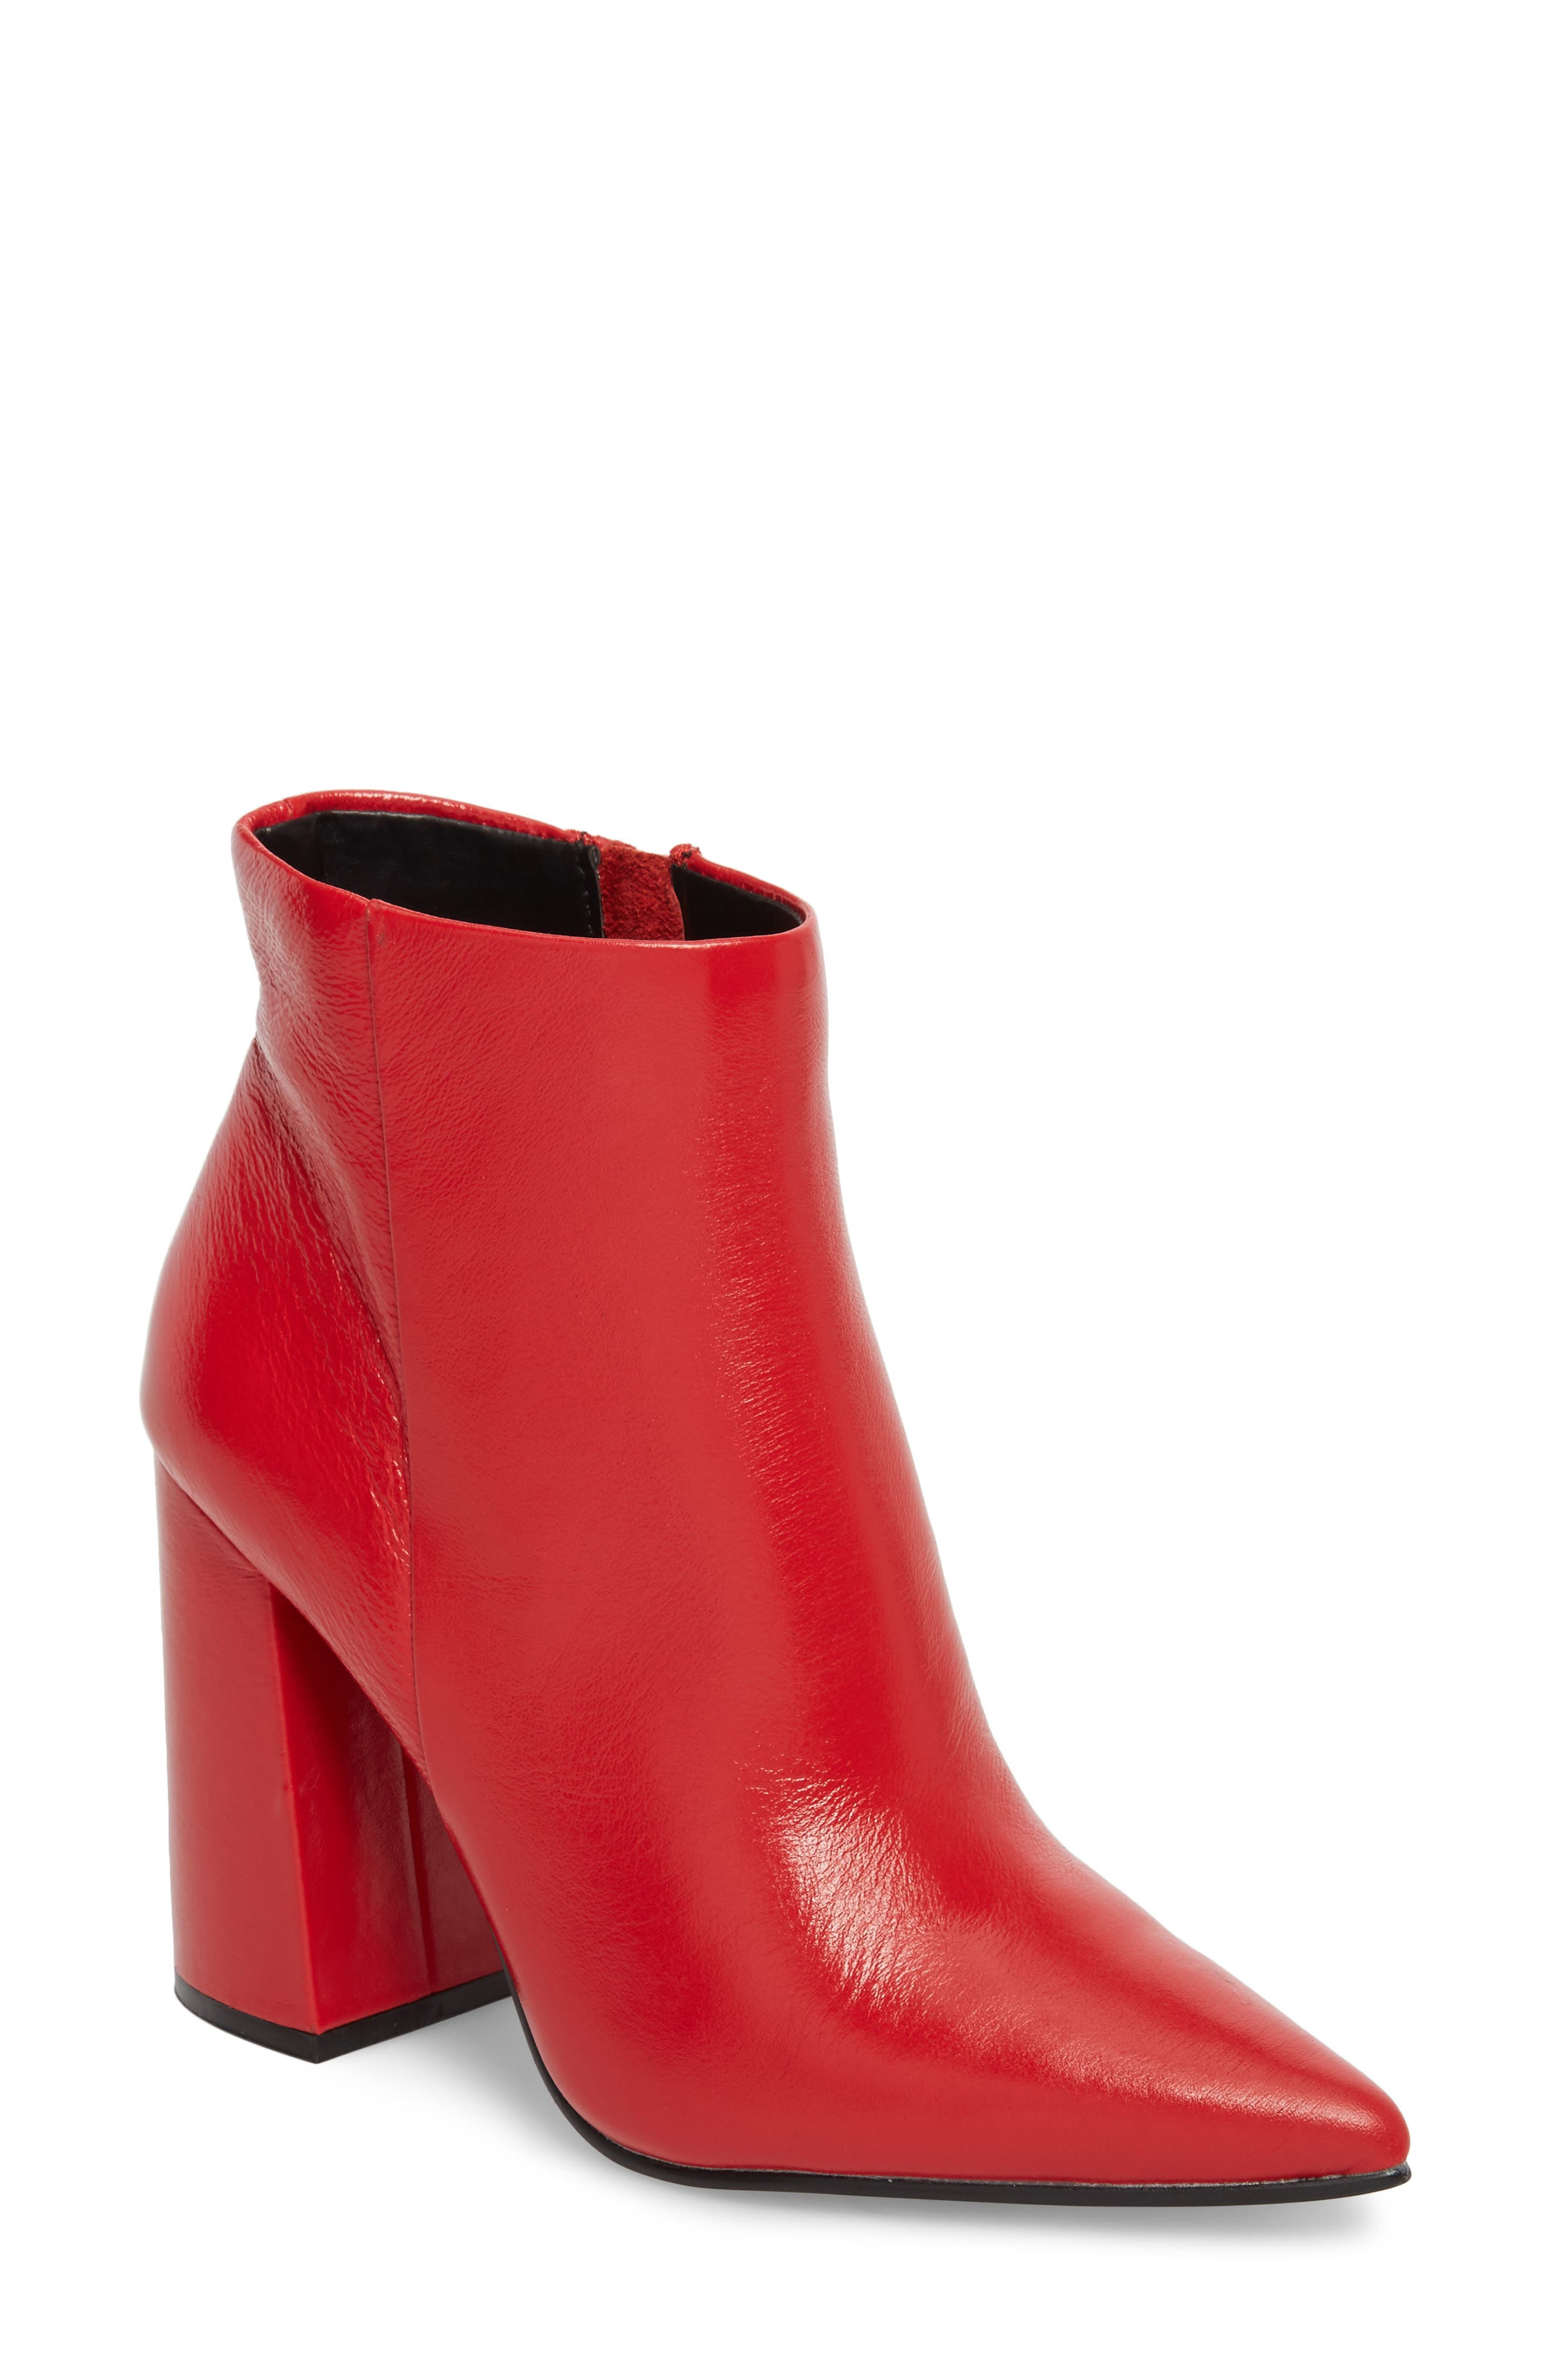 Justify Flared Heel Bootie,                             Main thumbnail 1, color,                             Red Leather